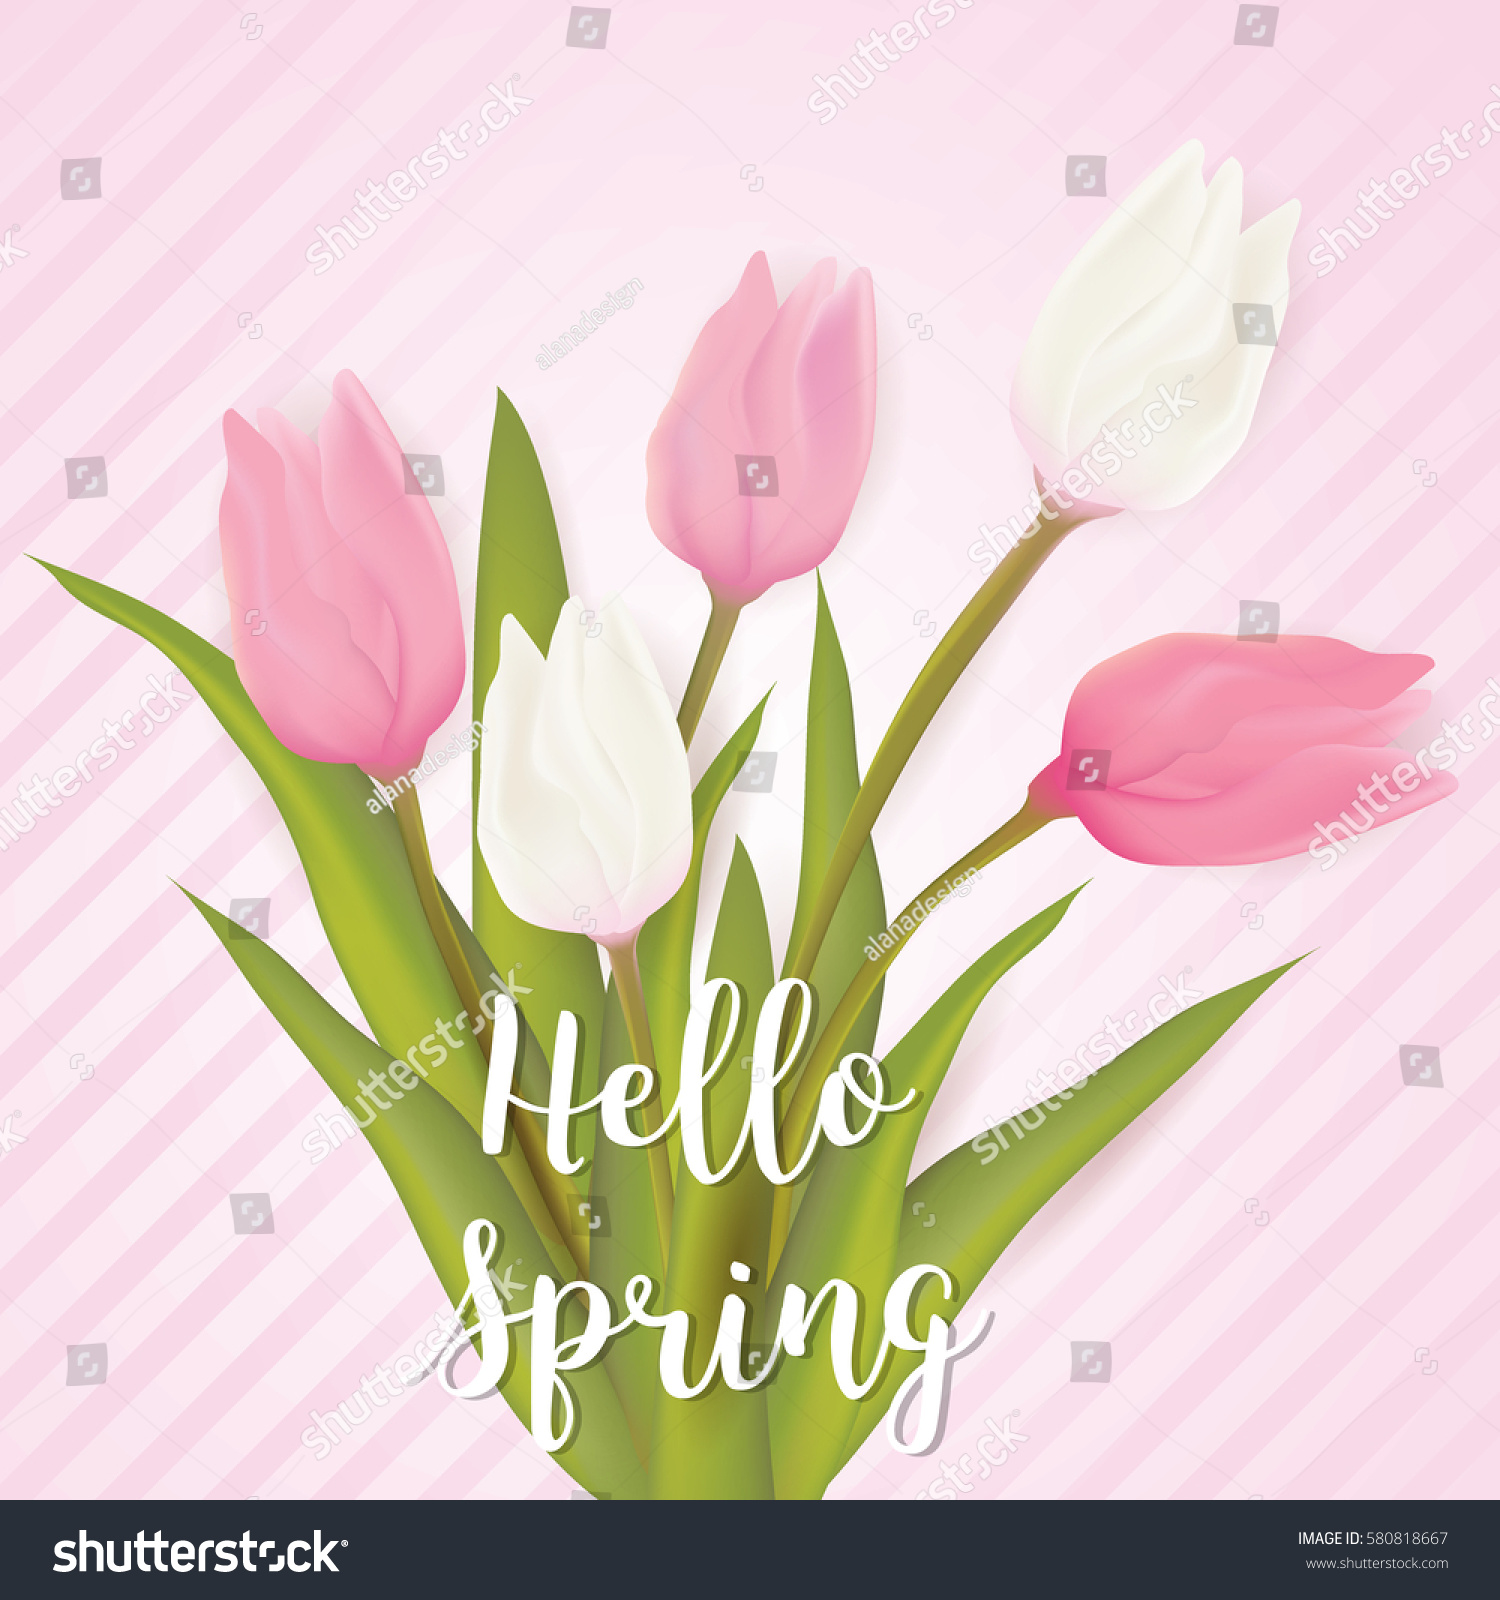 Hello Spring Card Tulip Flowers Typography Stock Vector 580818667